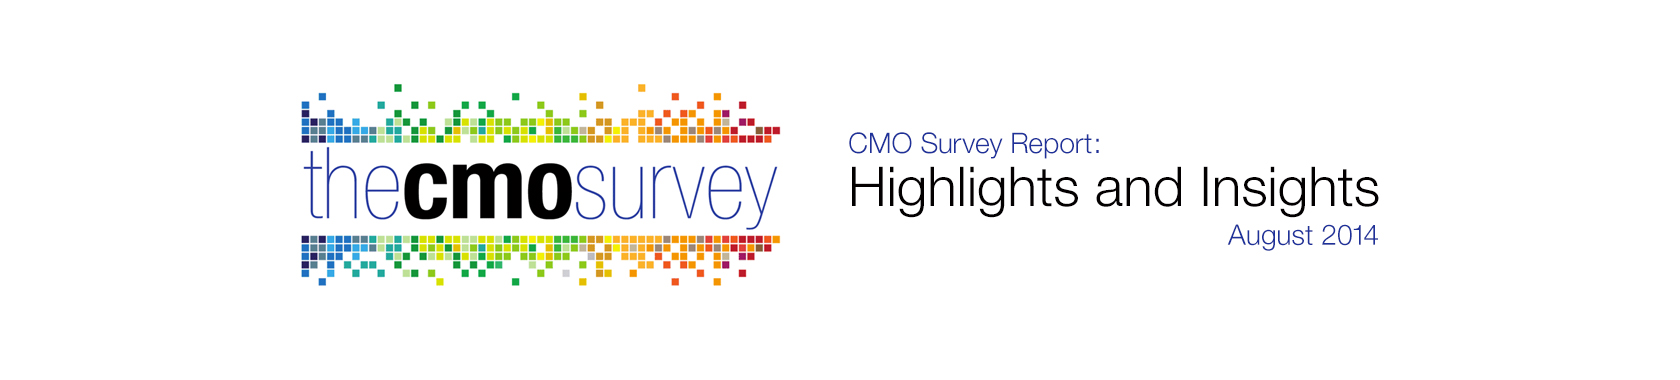 The CMO Survery Report: Highlights and Insights August 2014